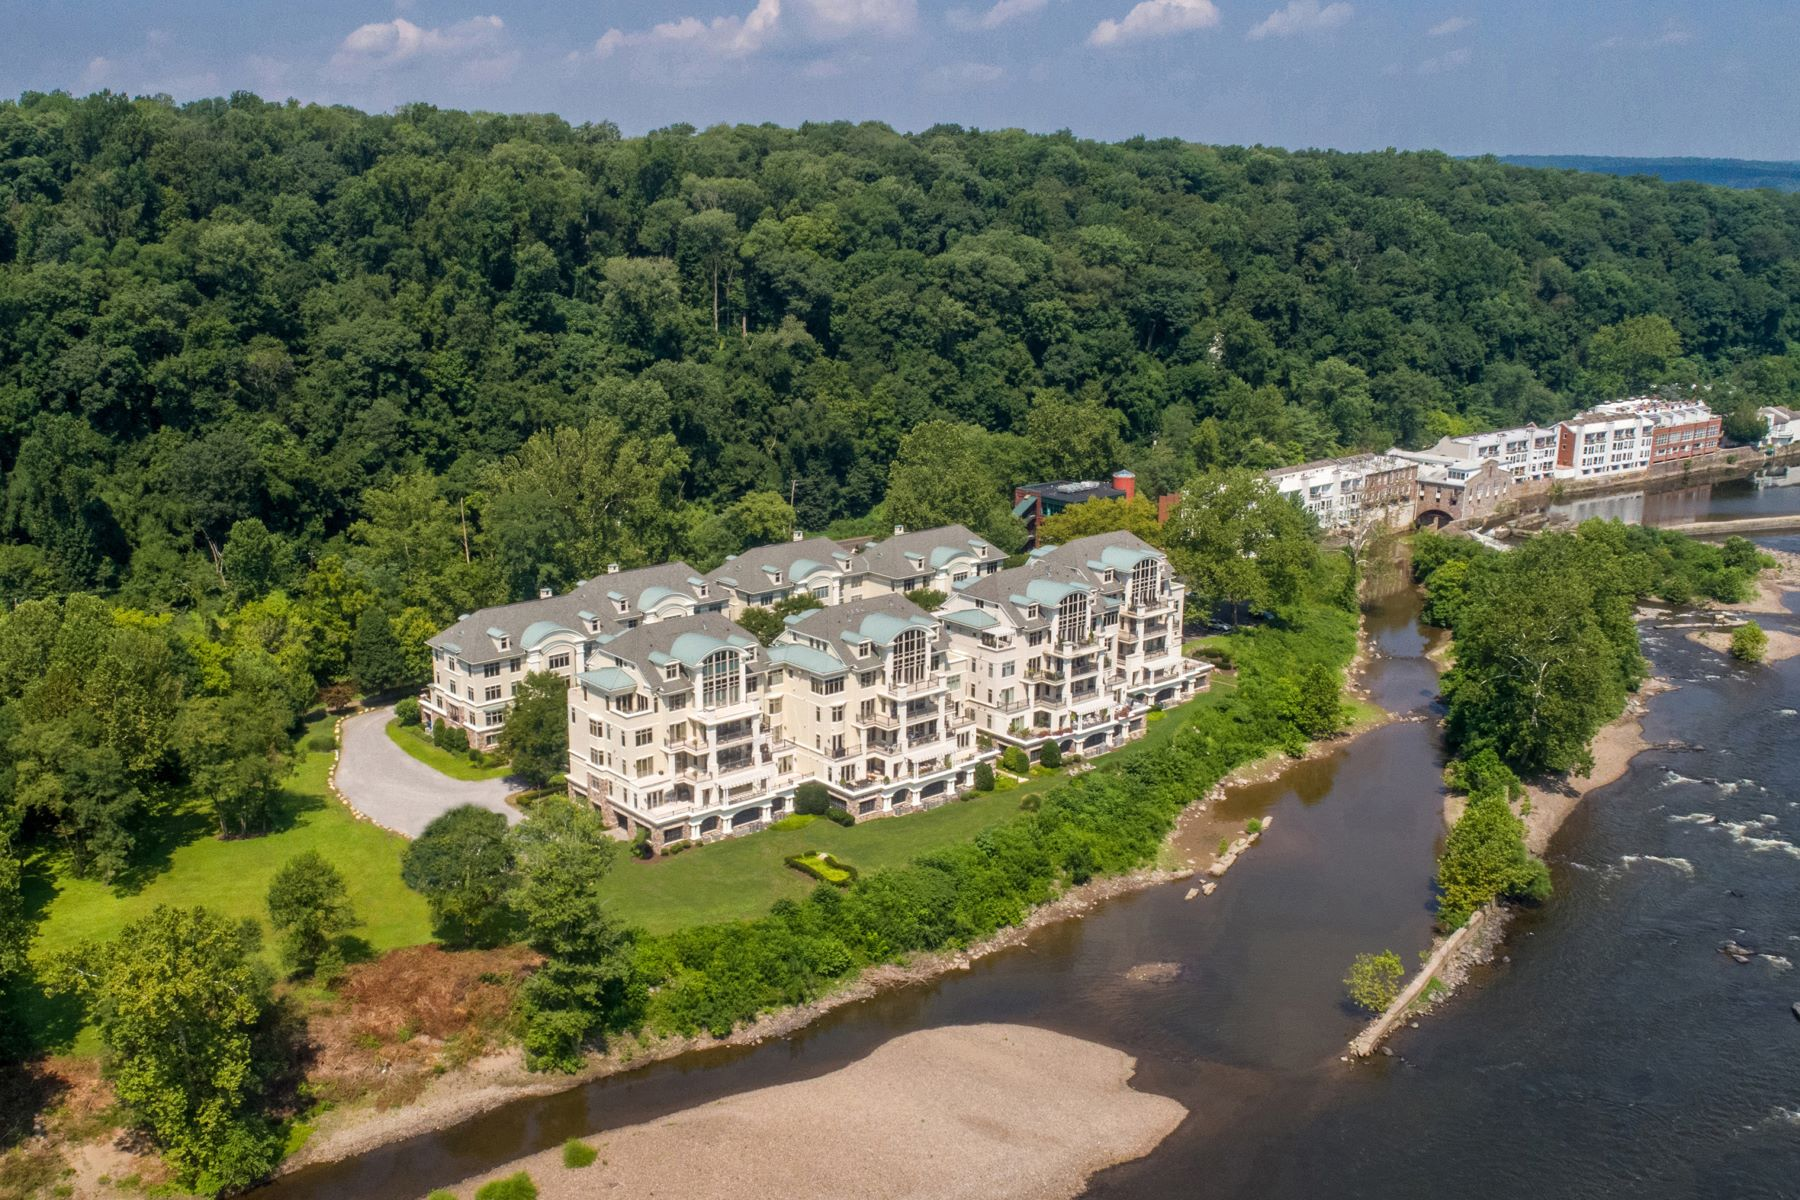 Property for Sale at Waterview Place 515 WATERVIEW PL, New Hope, Pennsylvania 18938 United States